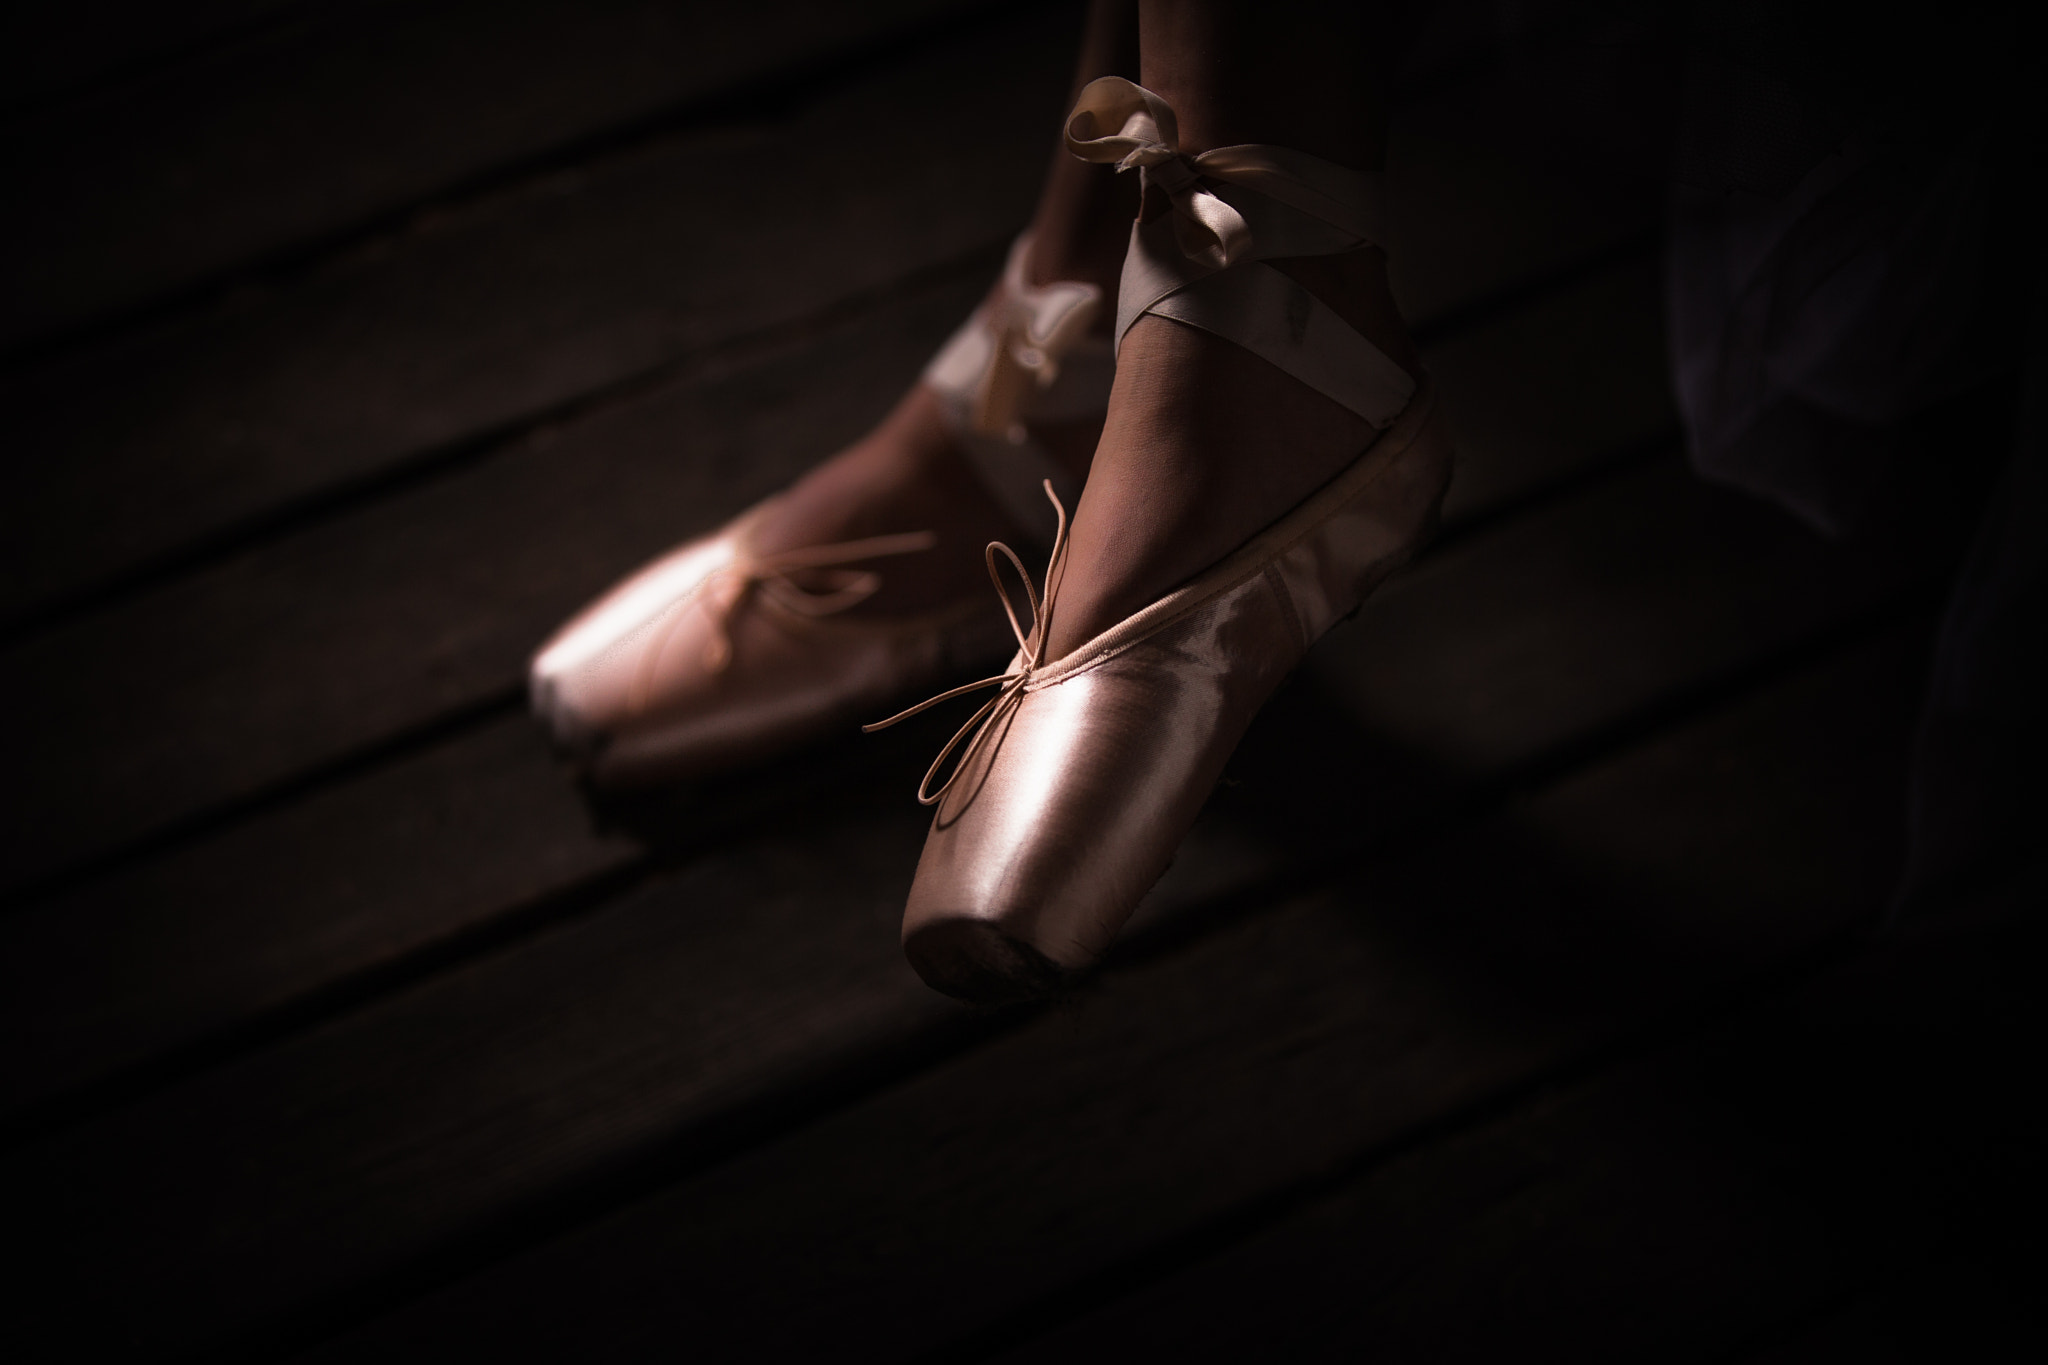 Photograph ballet shoes by Axel Lauer on 500px